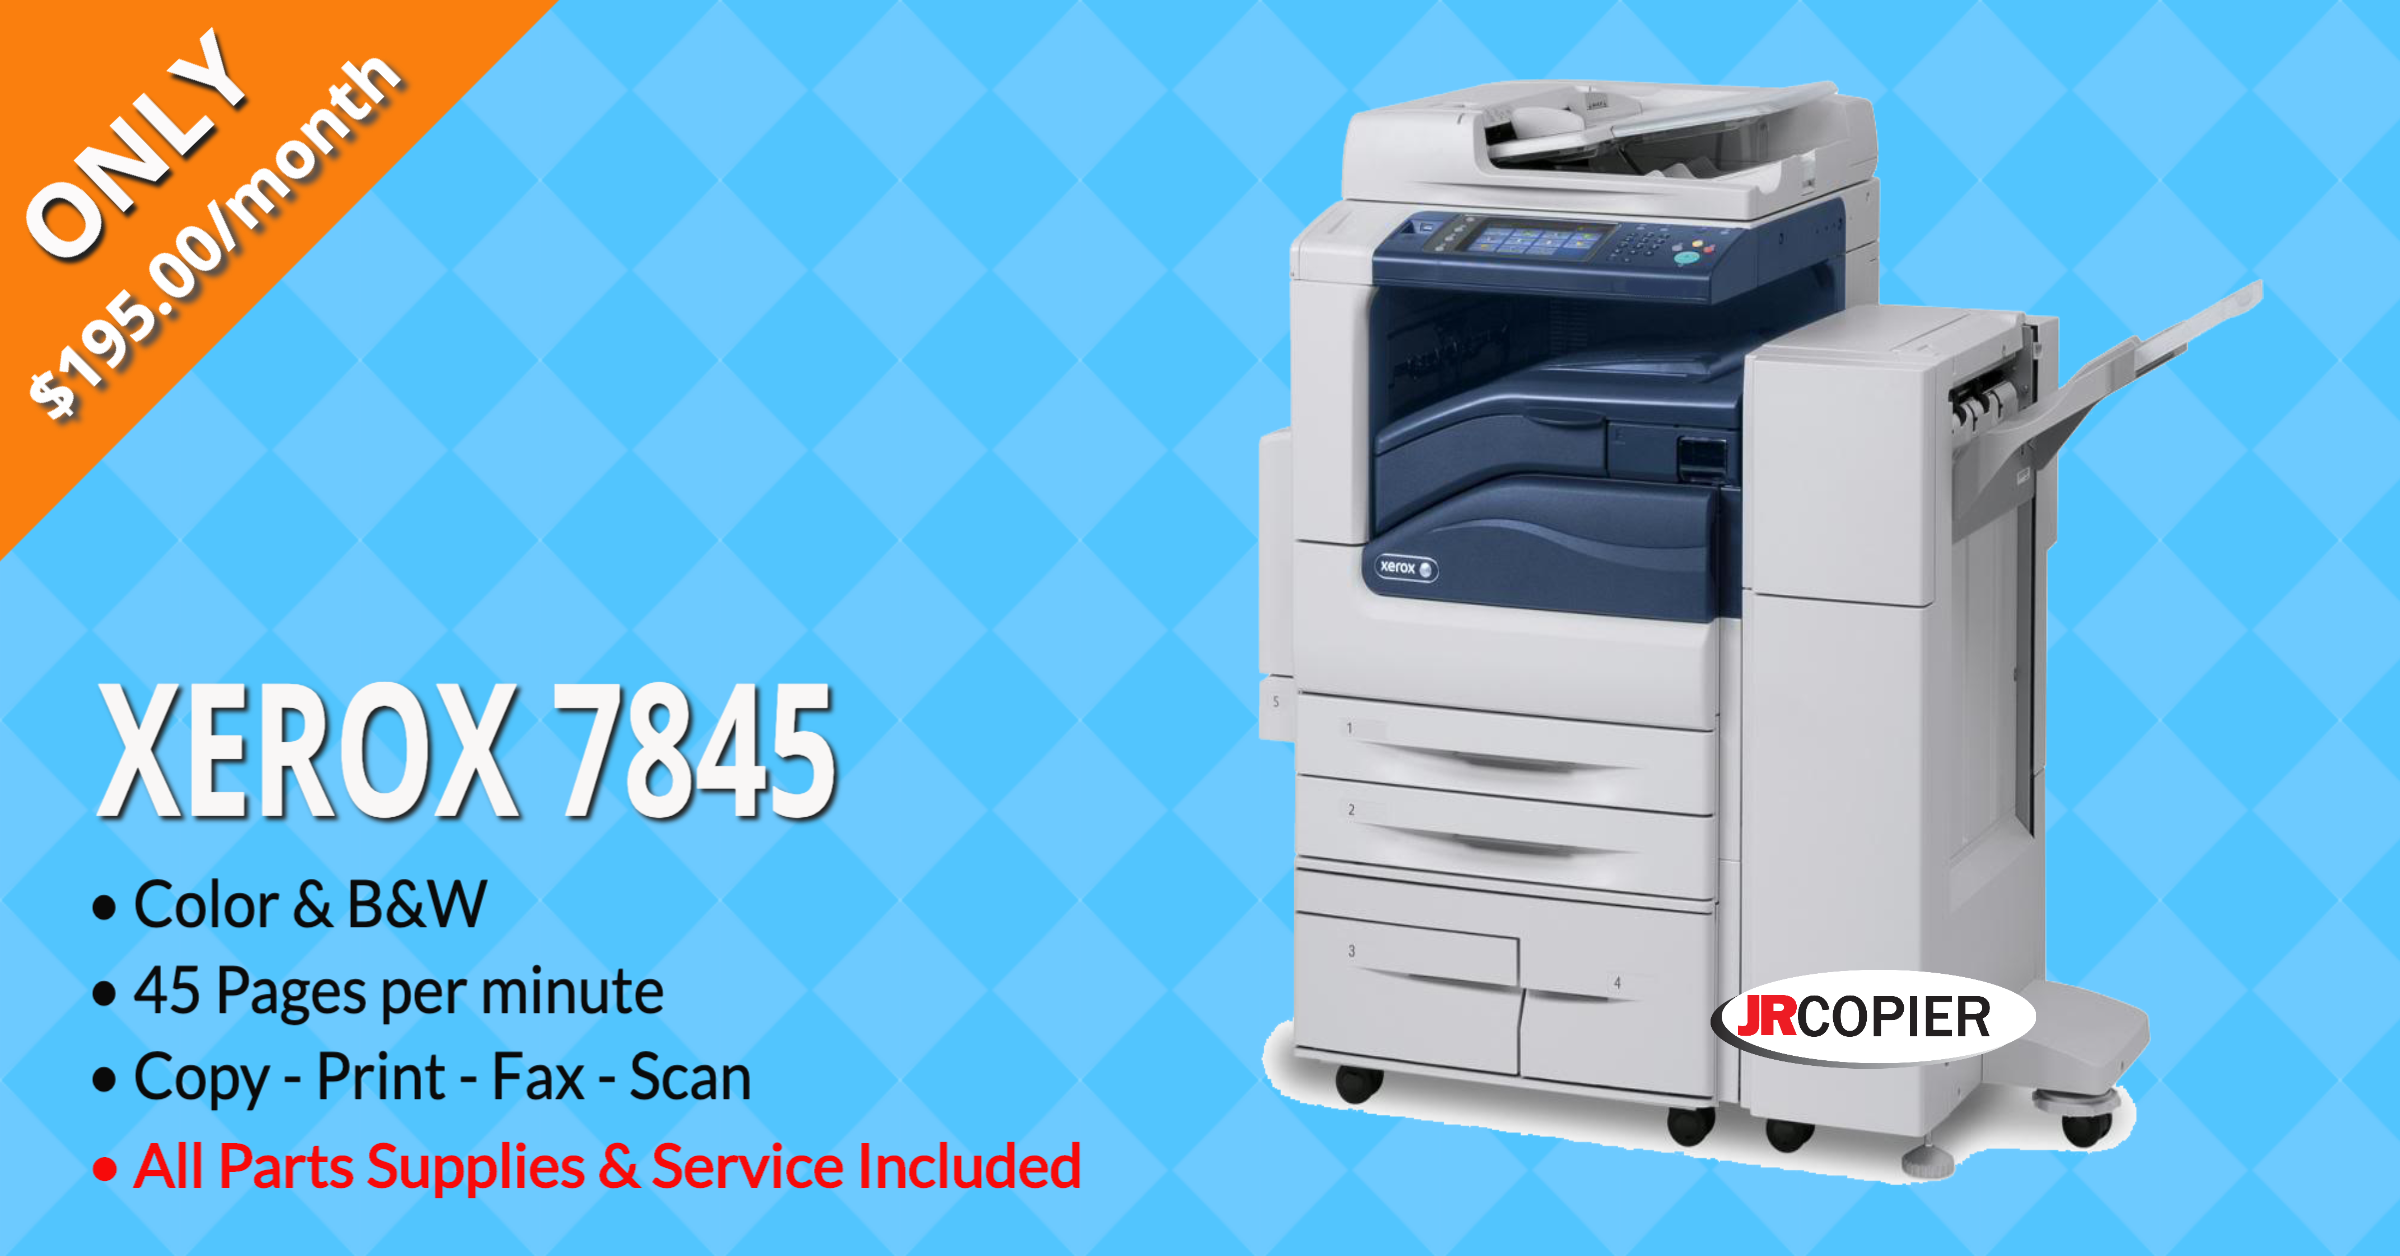 Color Printer 36301, 36302, 36303, 36304, 36305, 36312, 36321, 36345, 36350